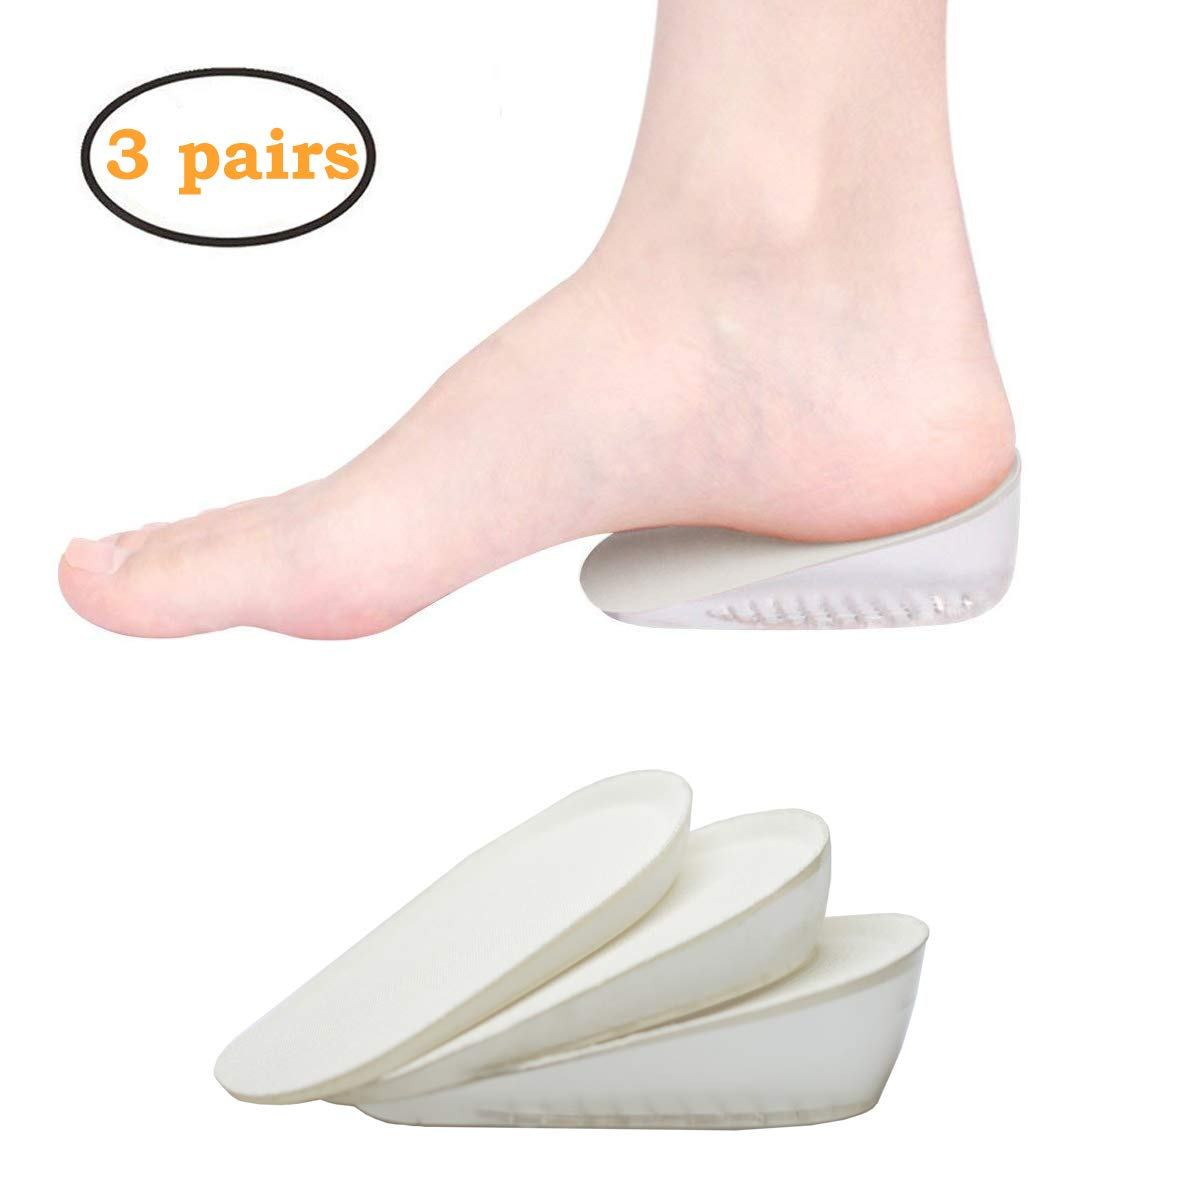 Height Increase Insole, 1cm 2cm 3cm Heel Lift Inserts, Gel Heel Cups Support Cushion Pads Shoe Insoles Inserts for Women to Relieve Heel Pain-3 Pairs by YIVAN